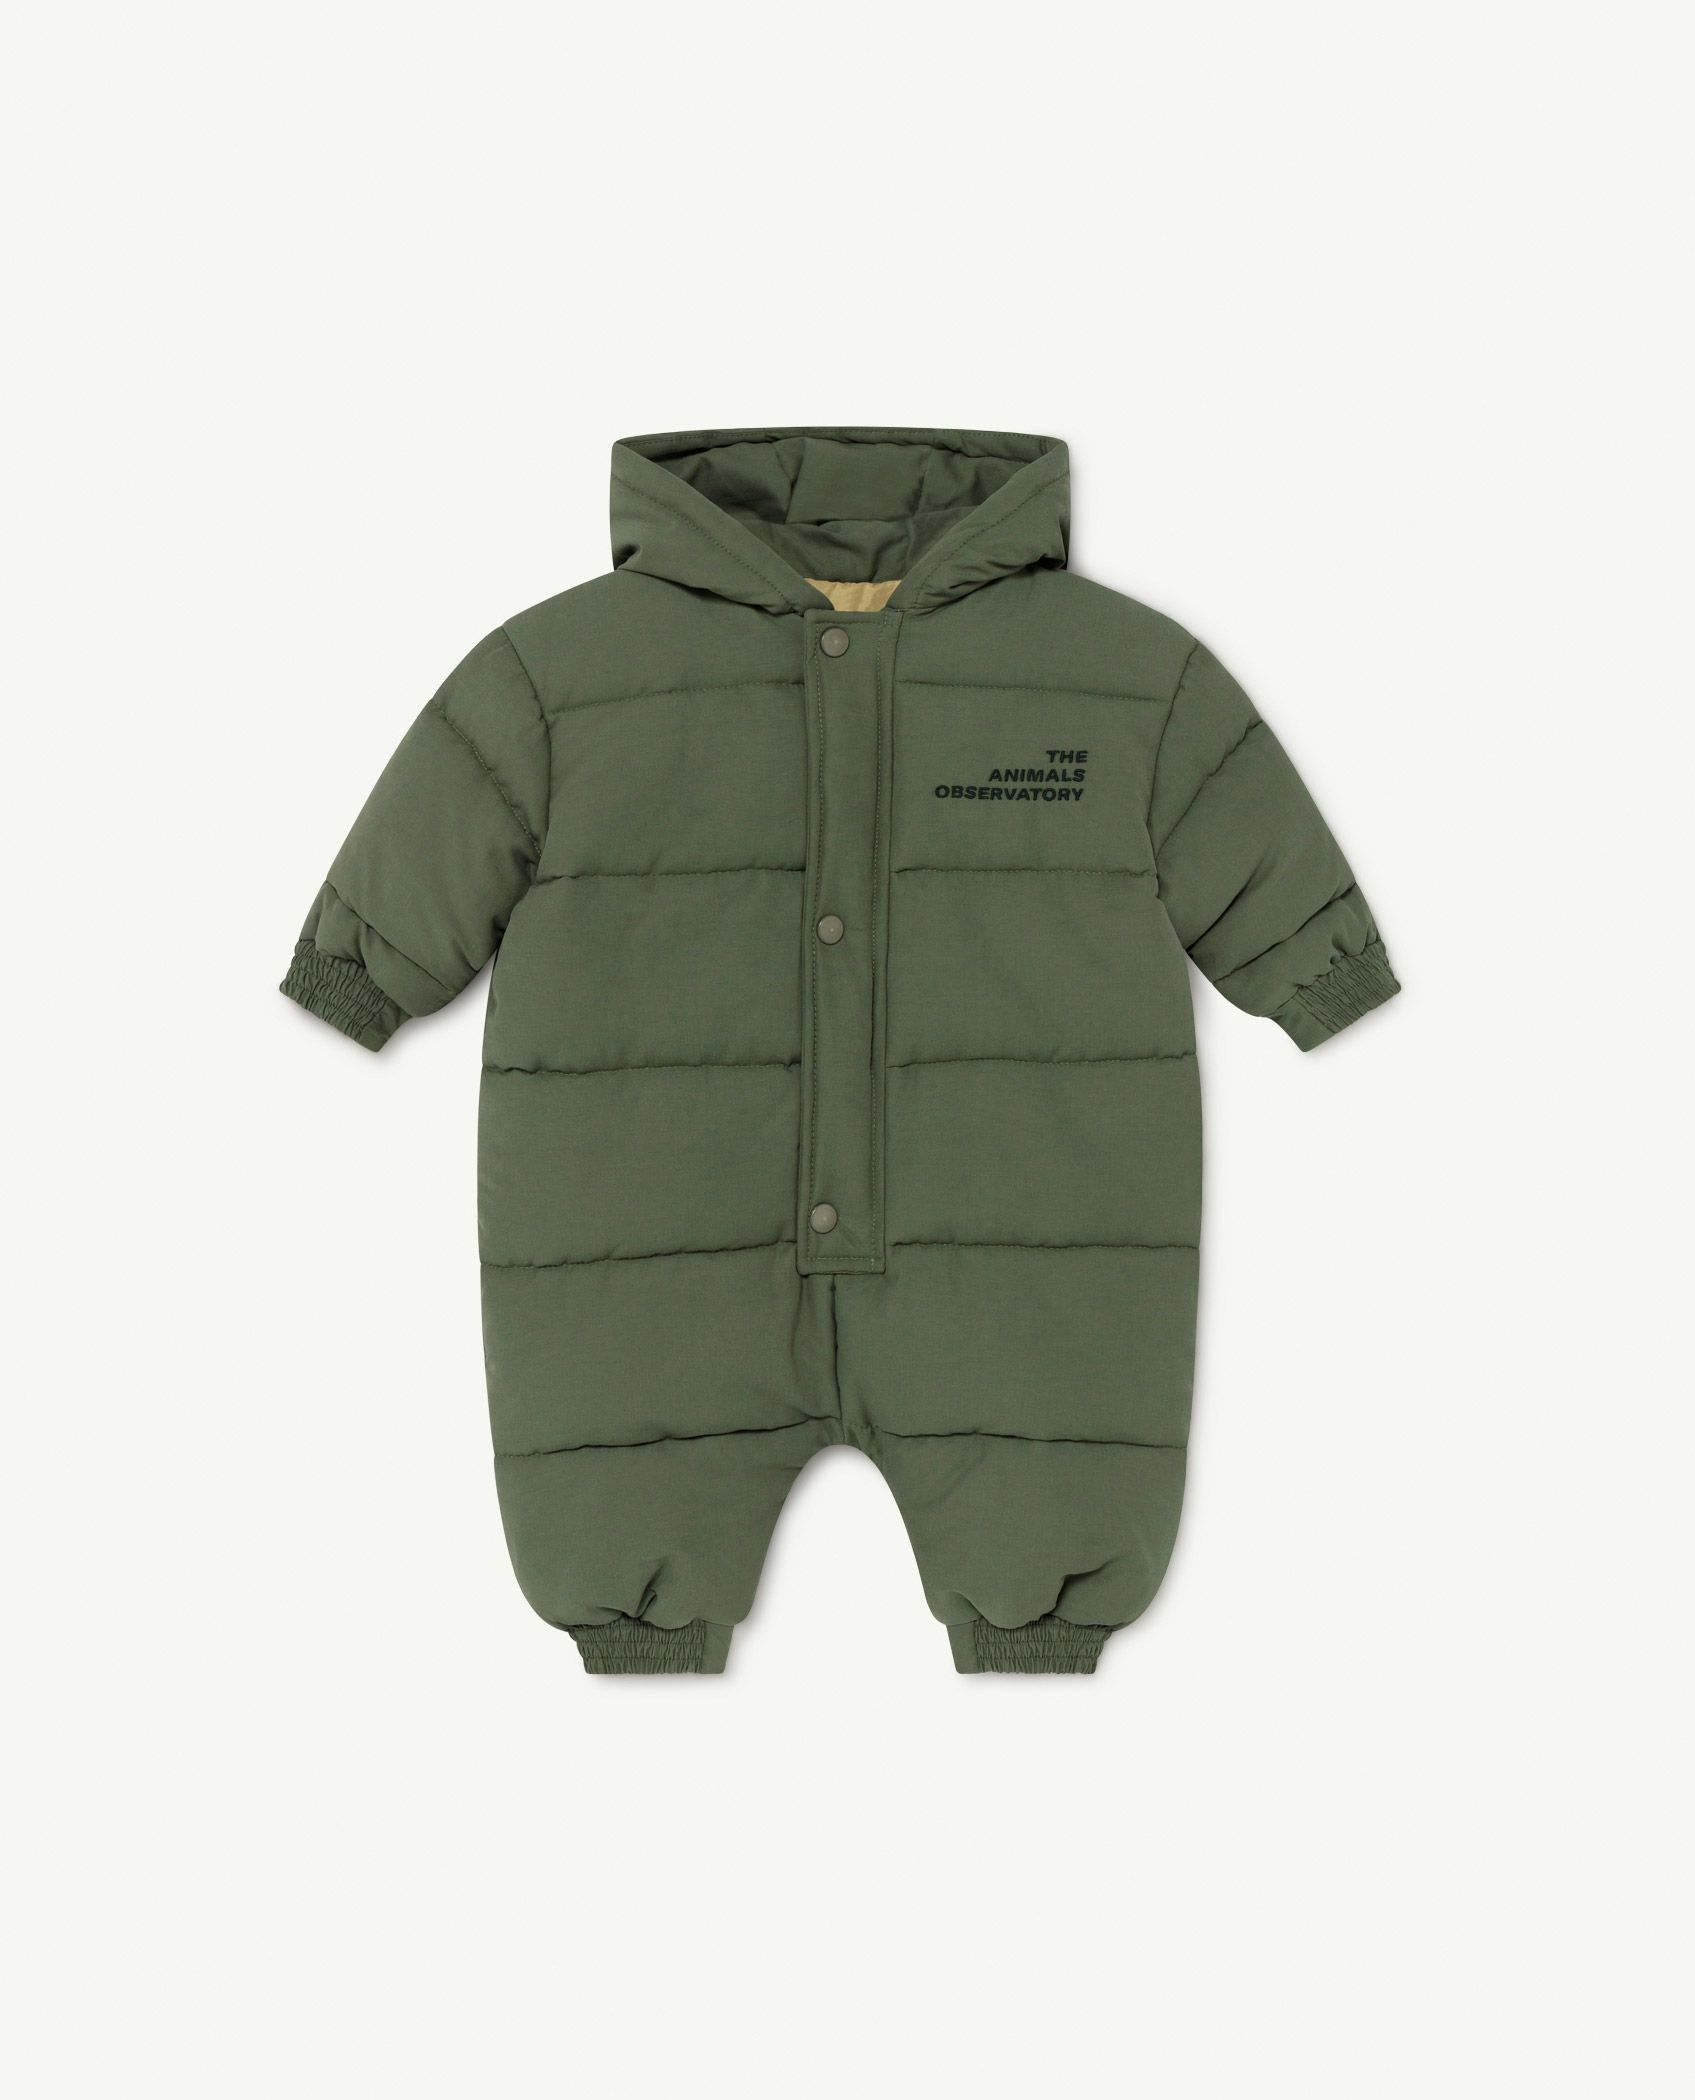 Military The Animals Bumblebee Baby Jumpsuit img-1